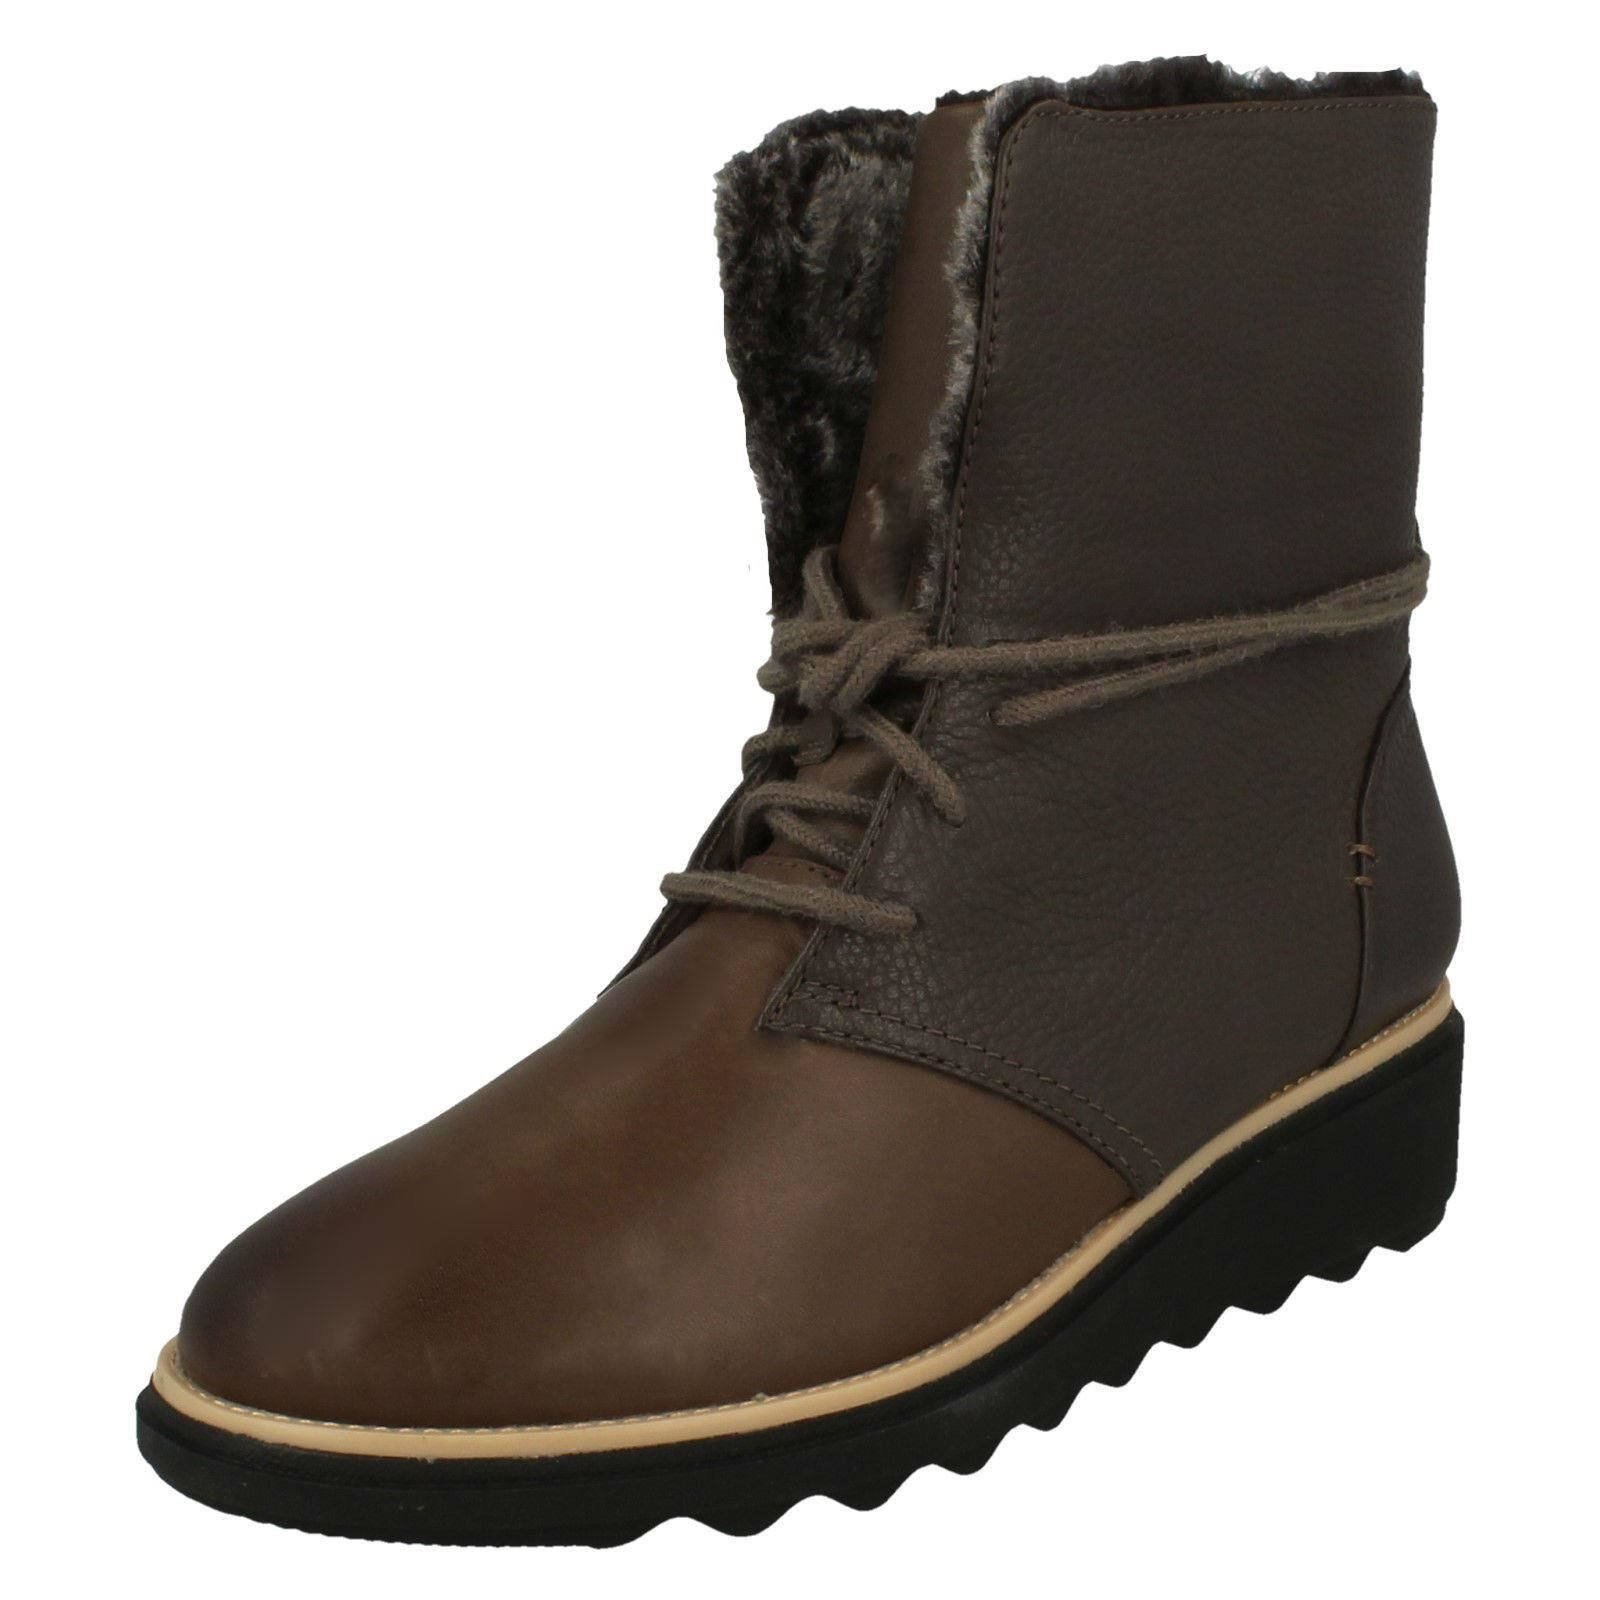 Womens-Clarks Winter Boots Sharon Pearl | eBay